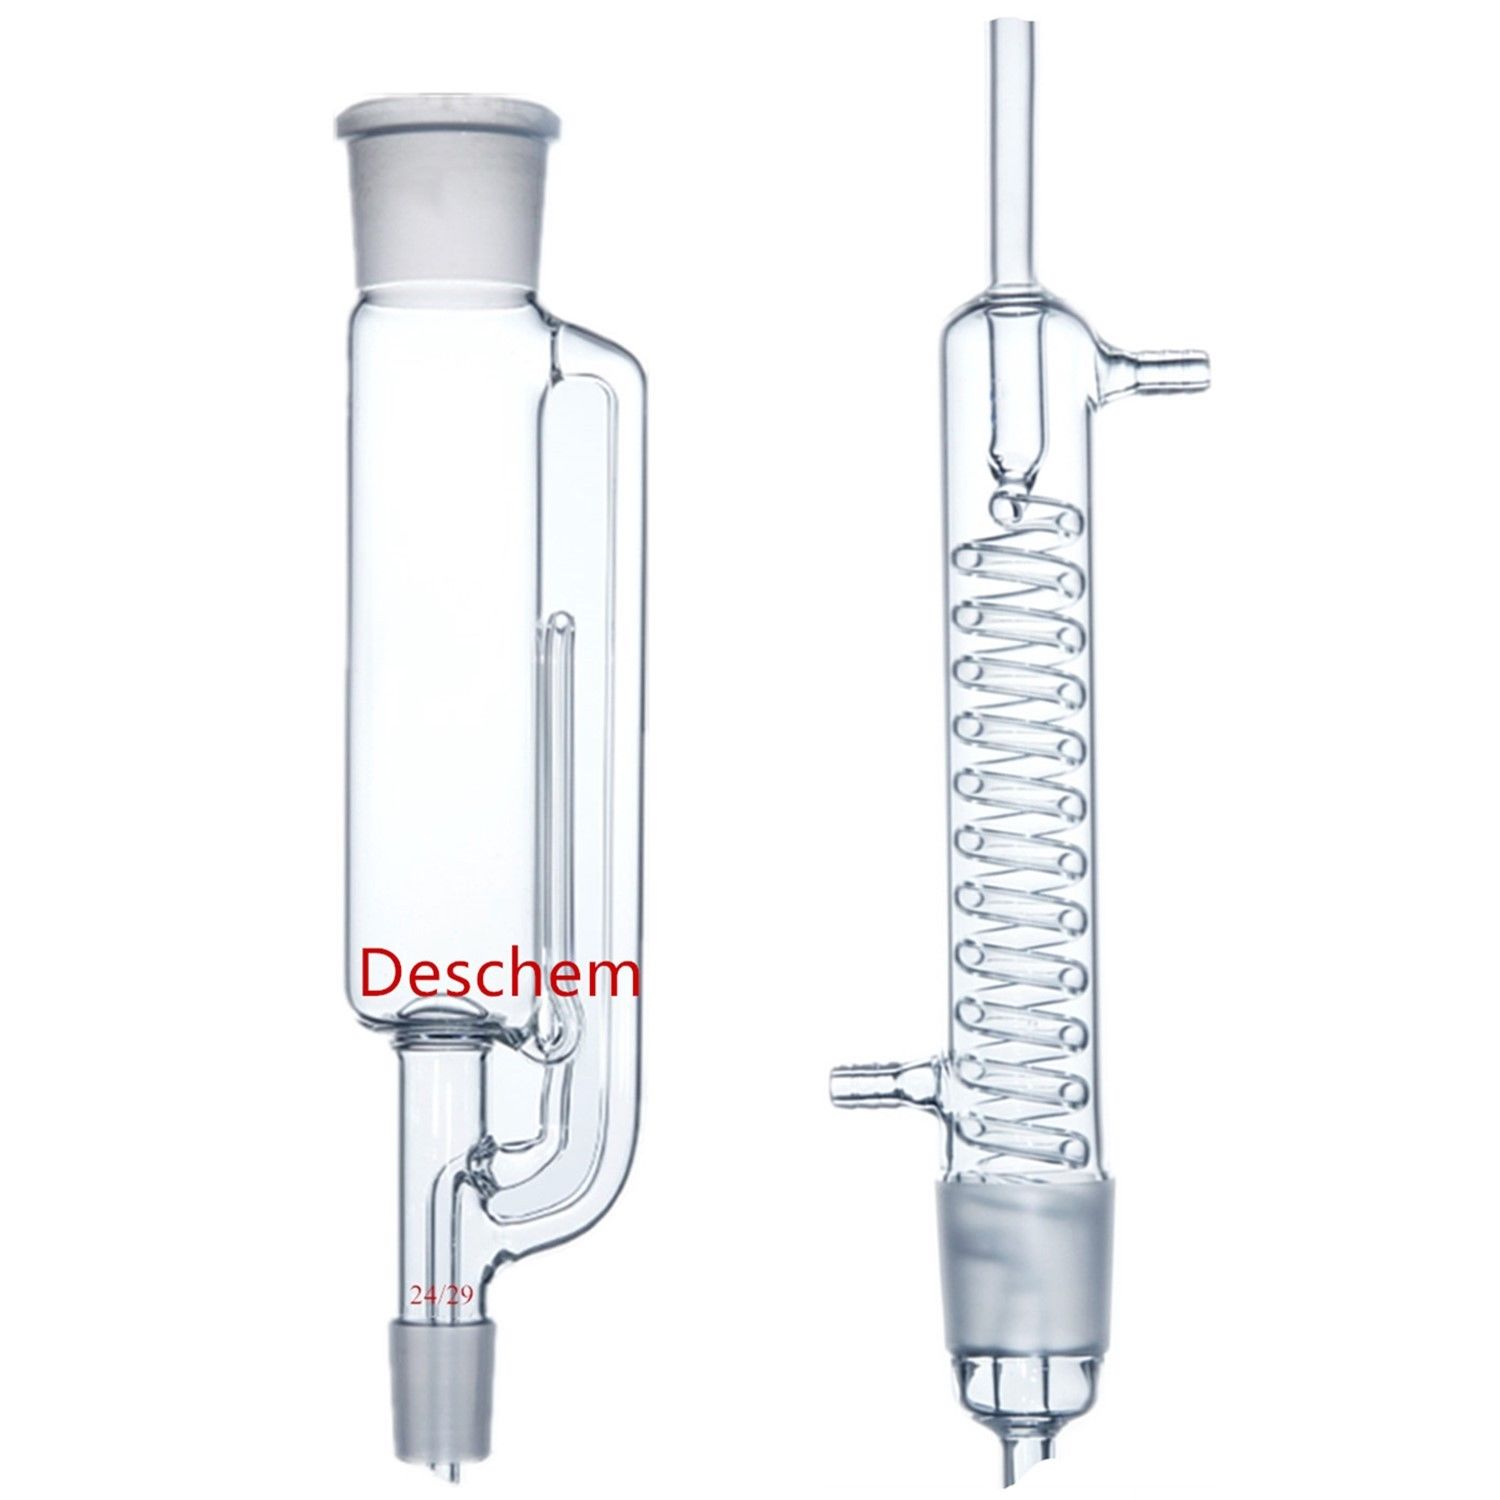 Deschem 500ml 24 29 Glass Soxhlet Extractor Body W Graham Coil Condenser